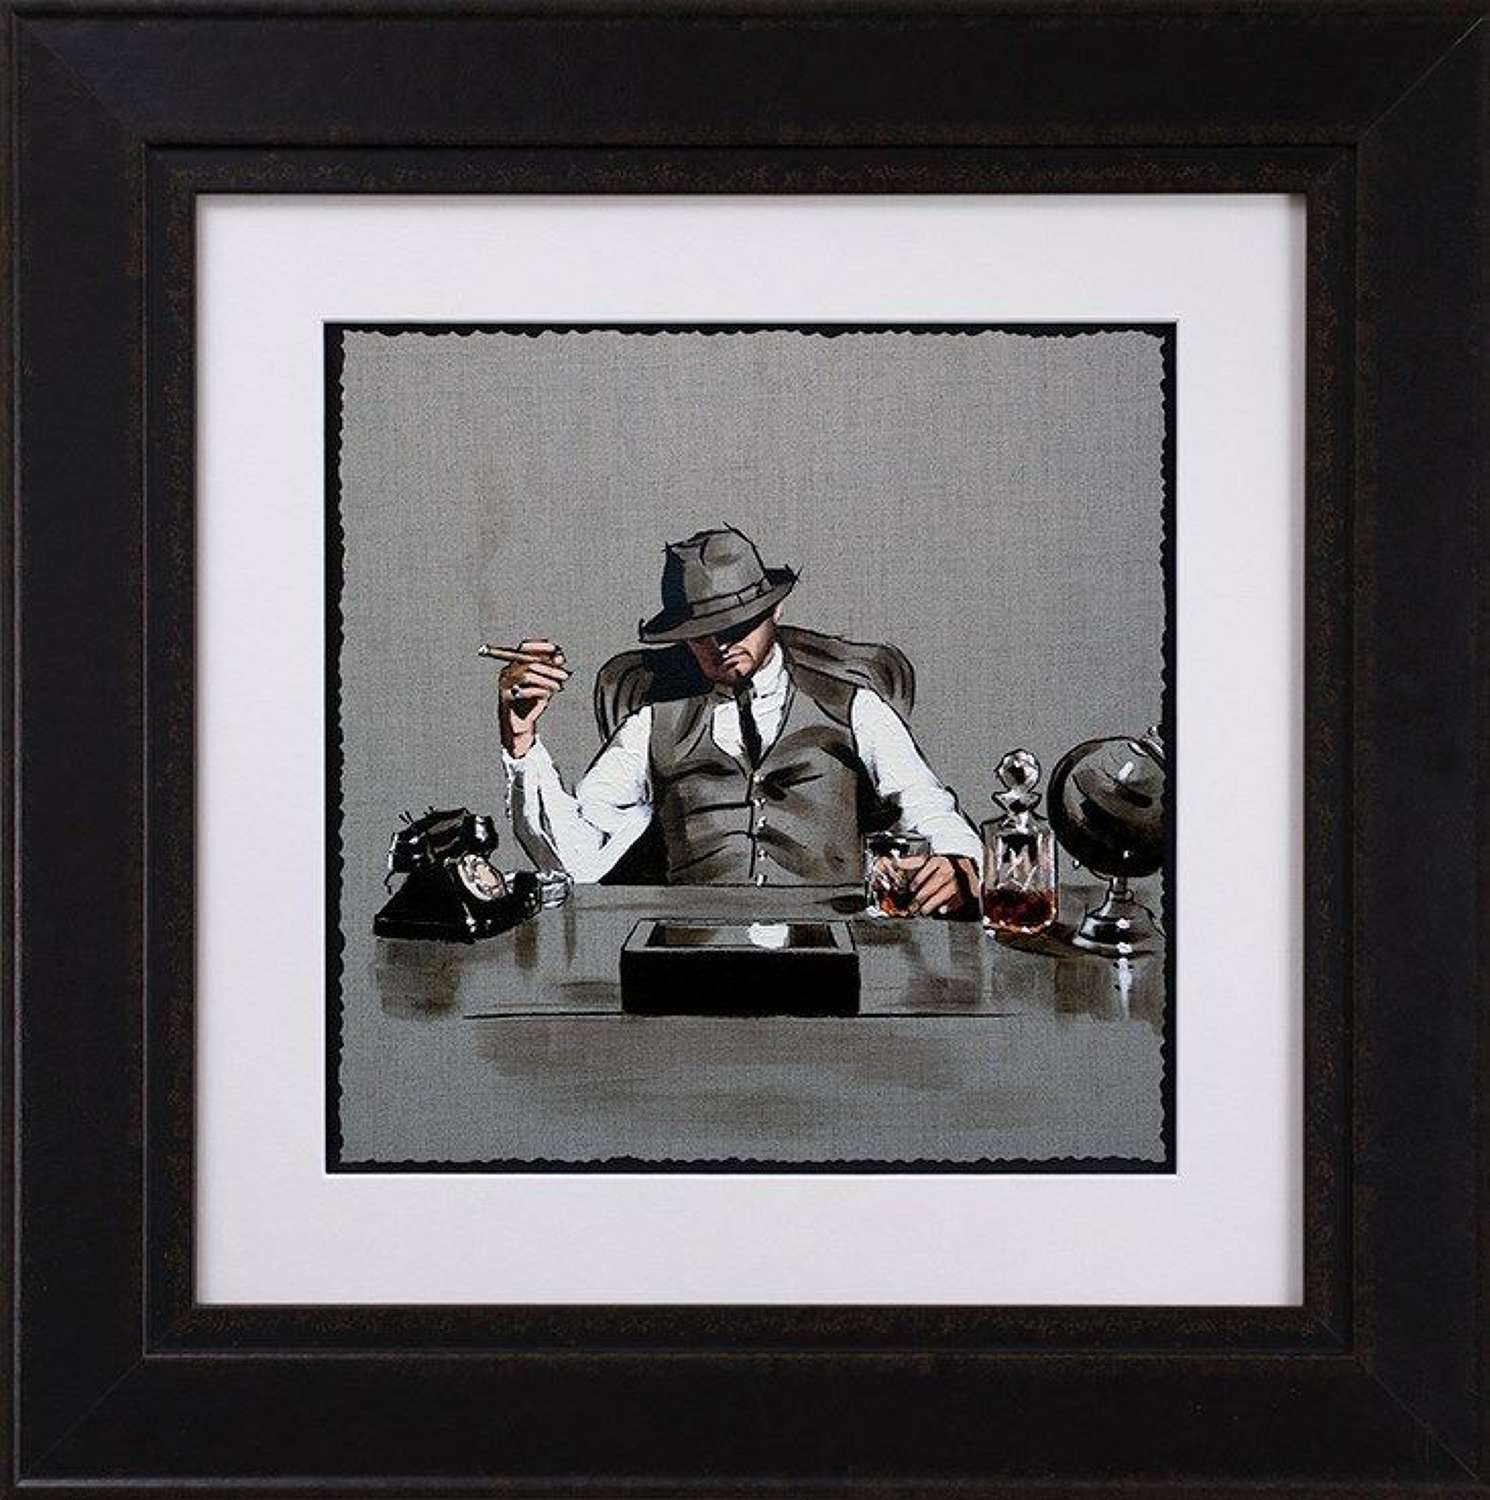 The Boss - Sketch - Framed Art Print By Richard Blunt